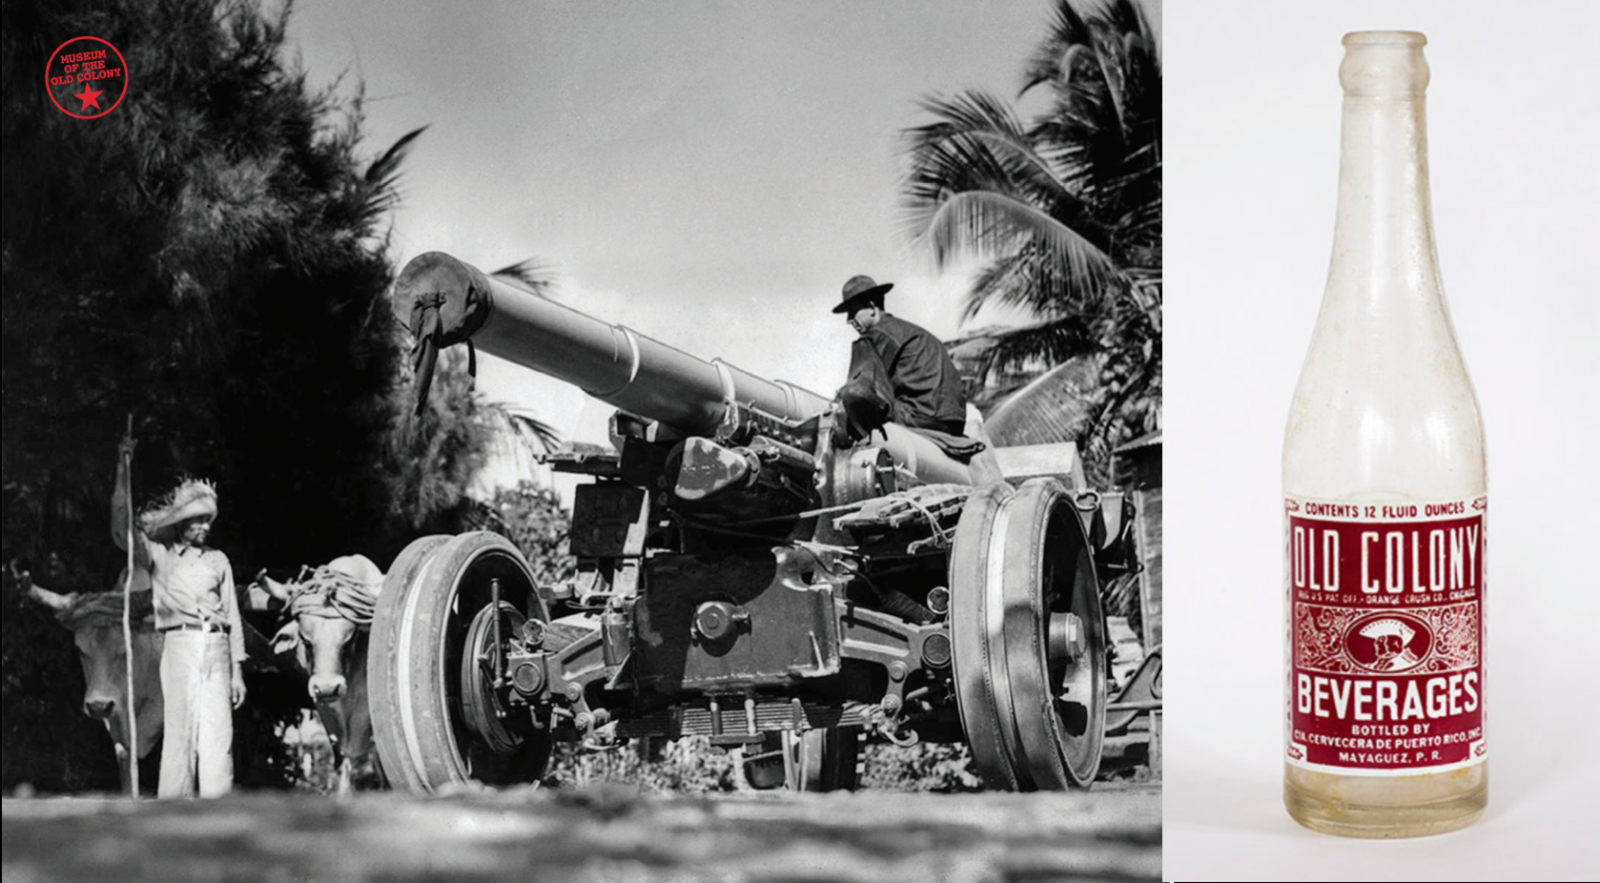 archival photograph of soldier with tank, photograph of Old Colony brand soda bottle